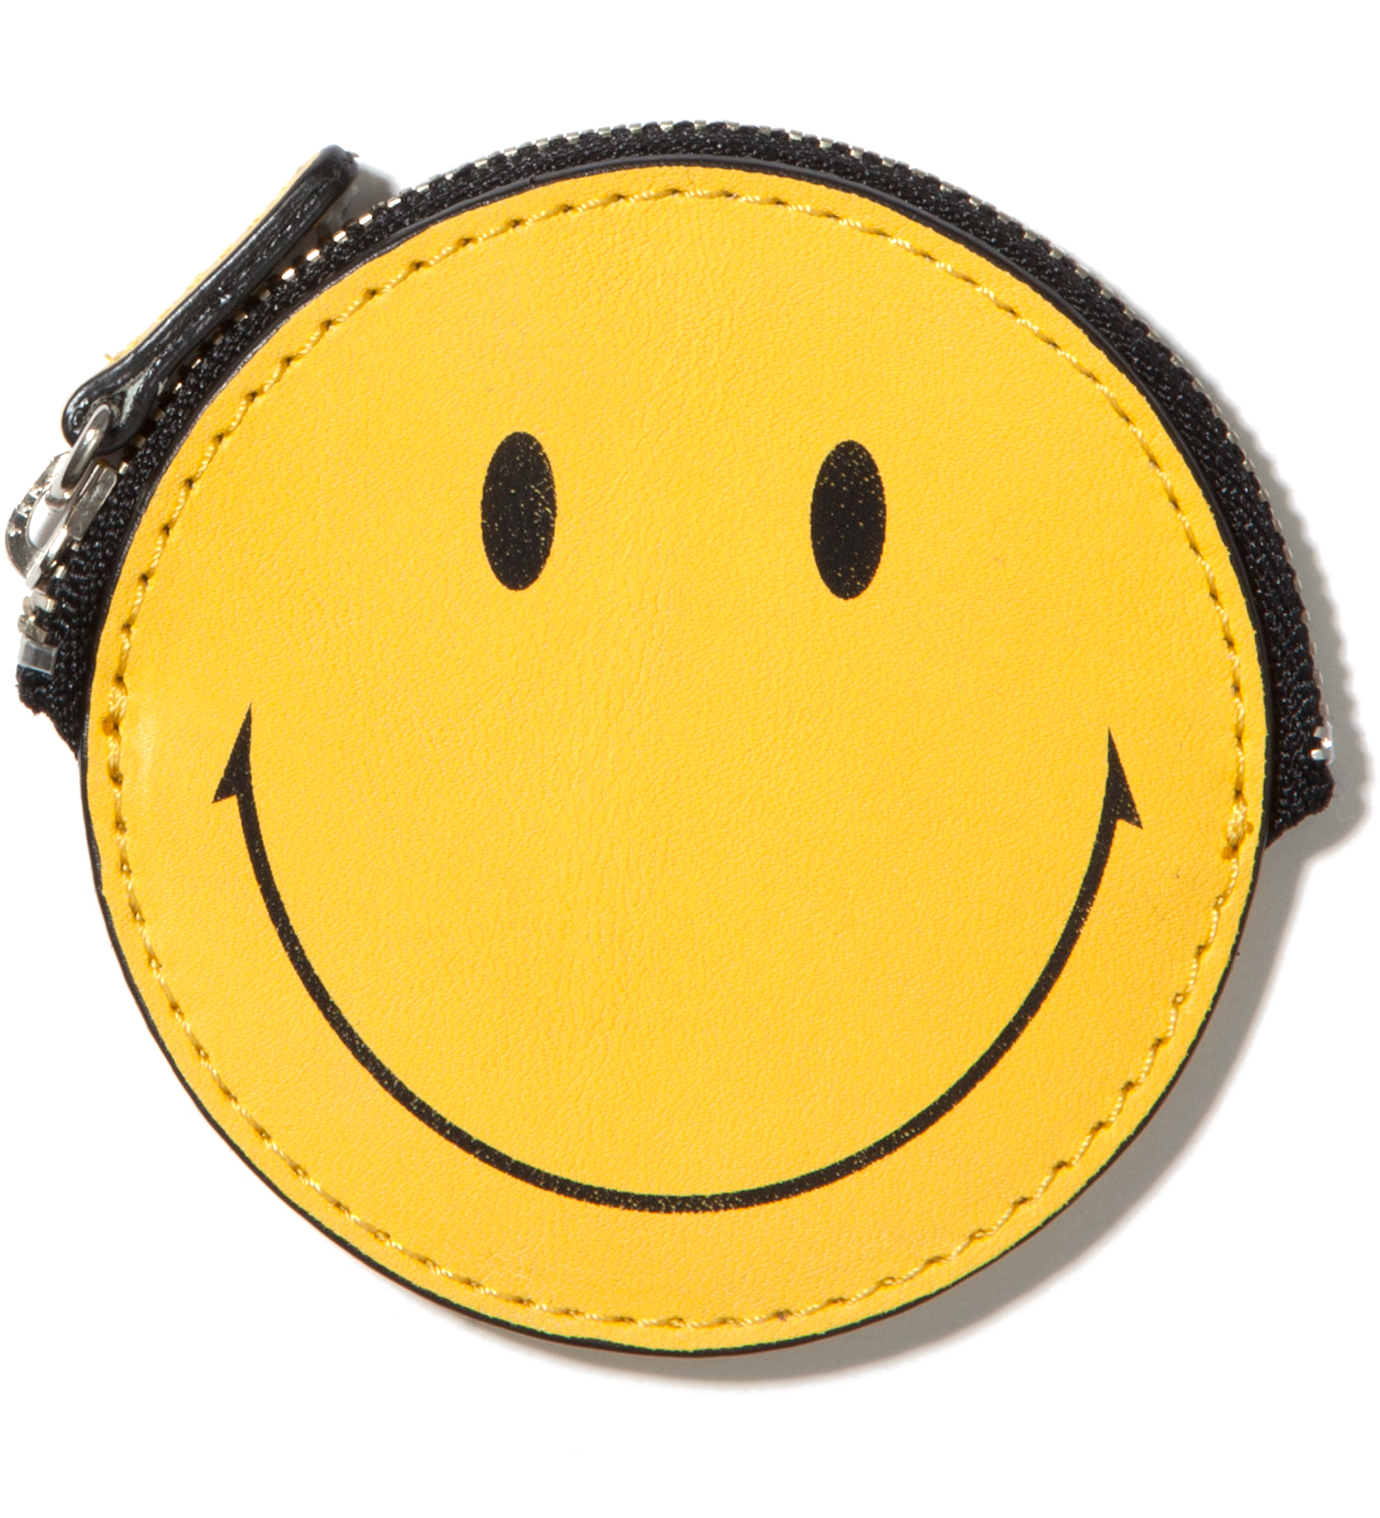 SECOND LAB Smiley Coin Case